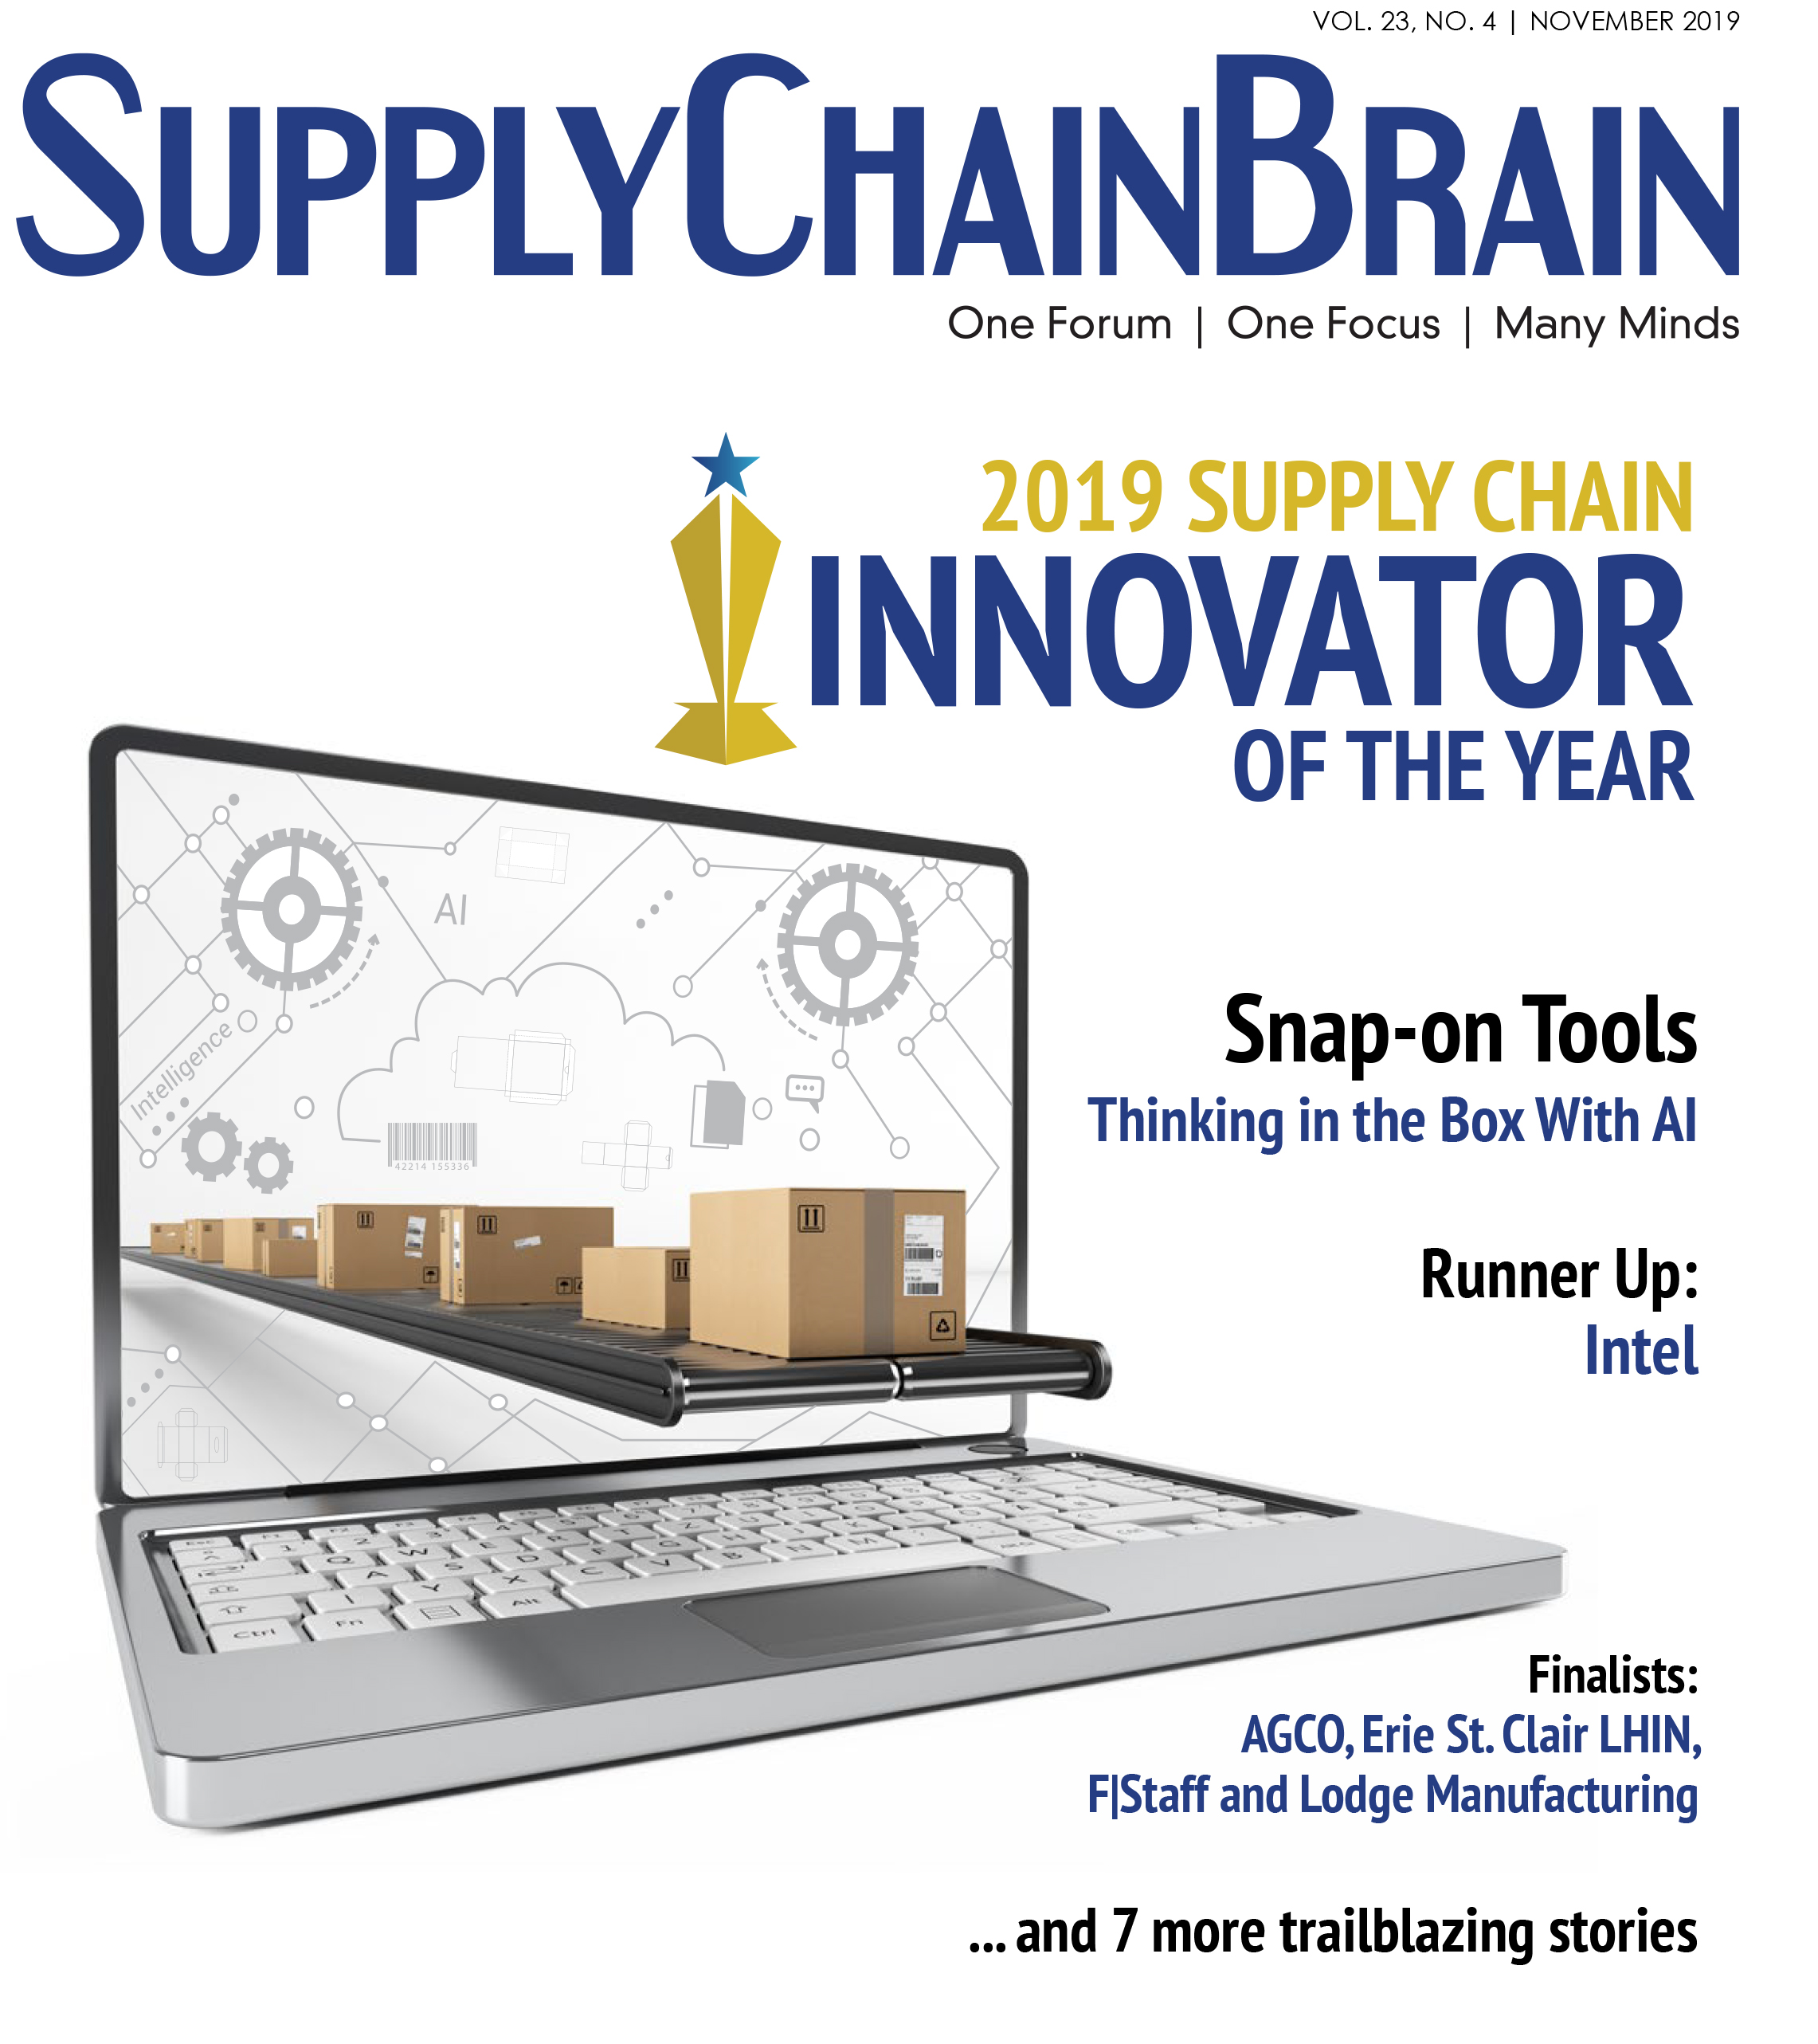 2019 Supply Chain Innovator of the Year